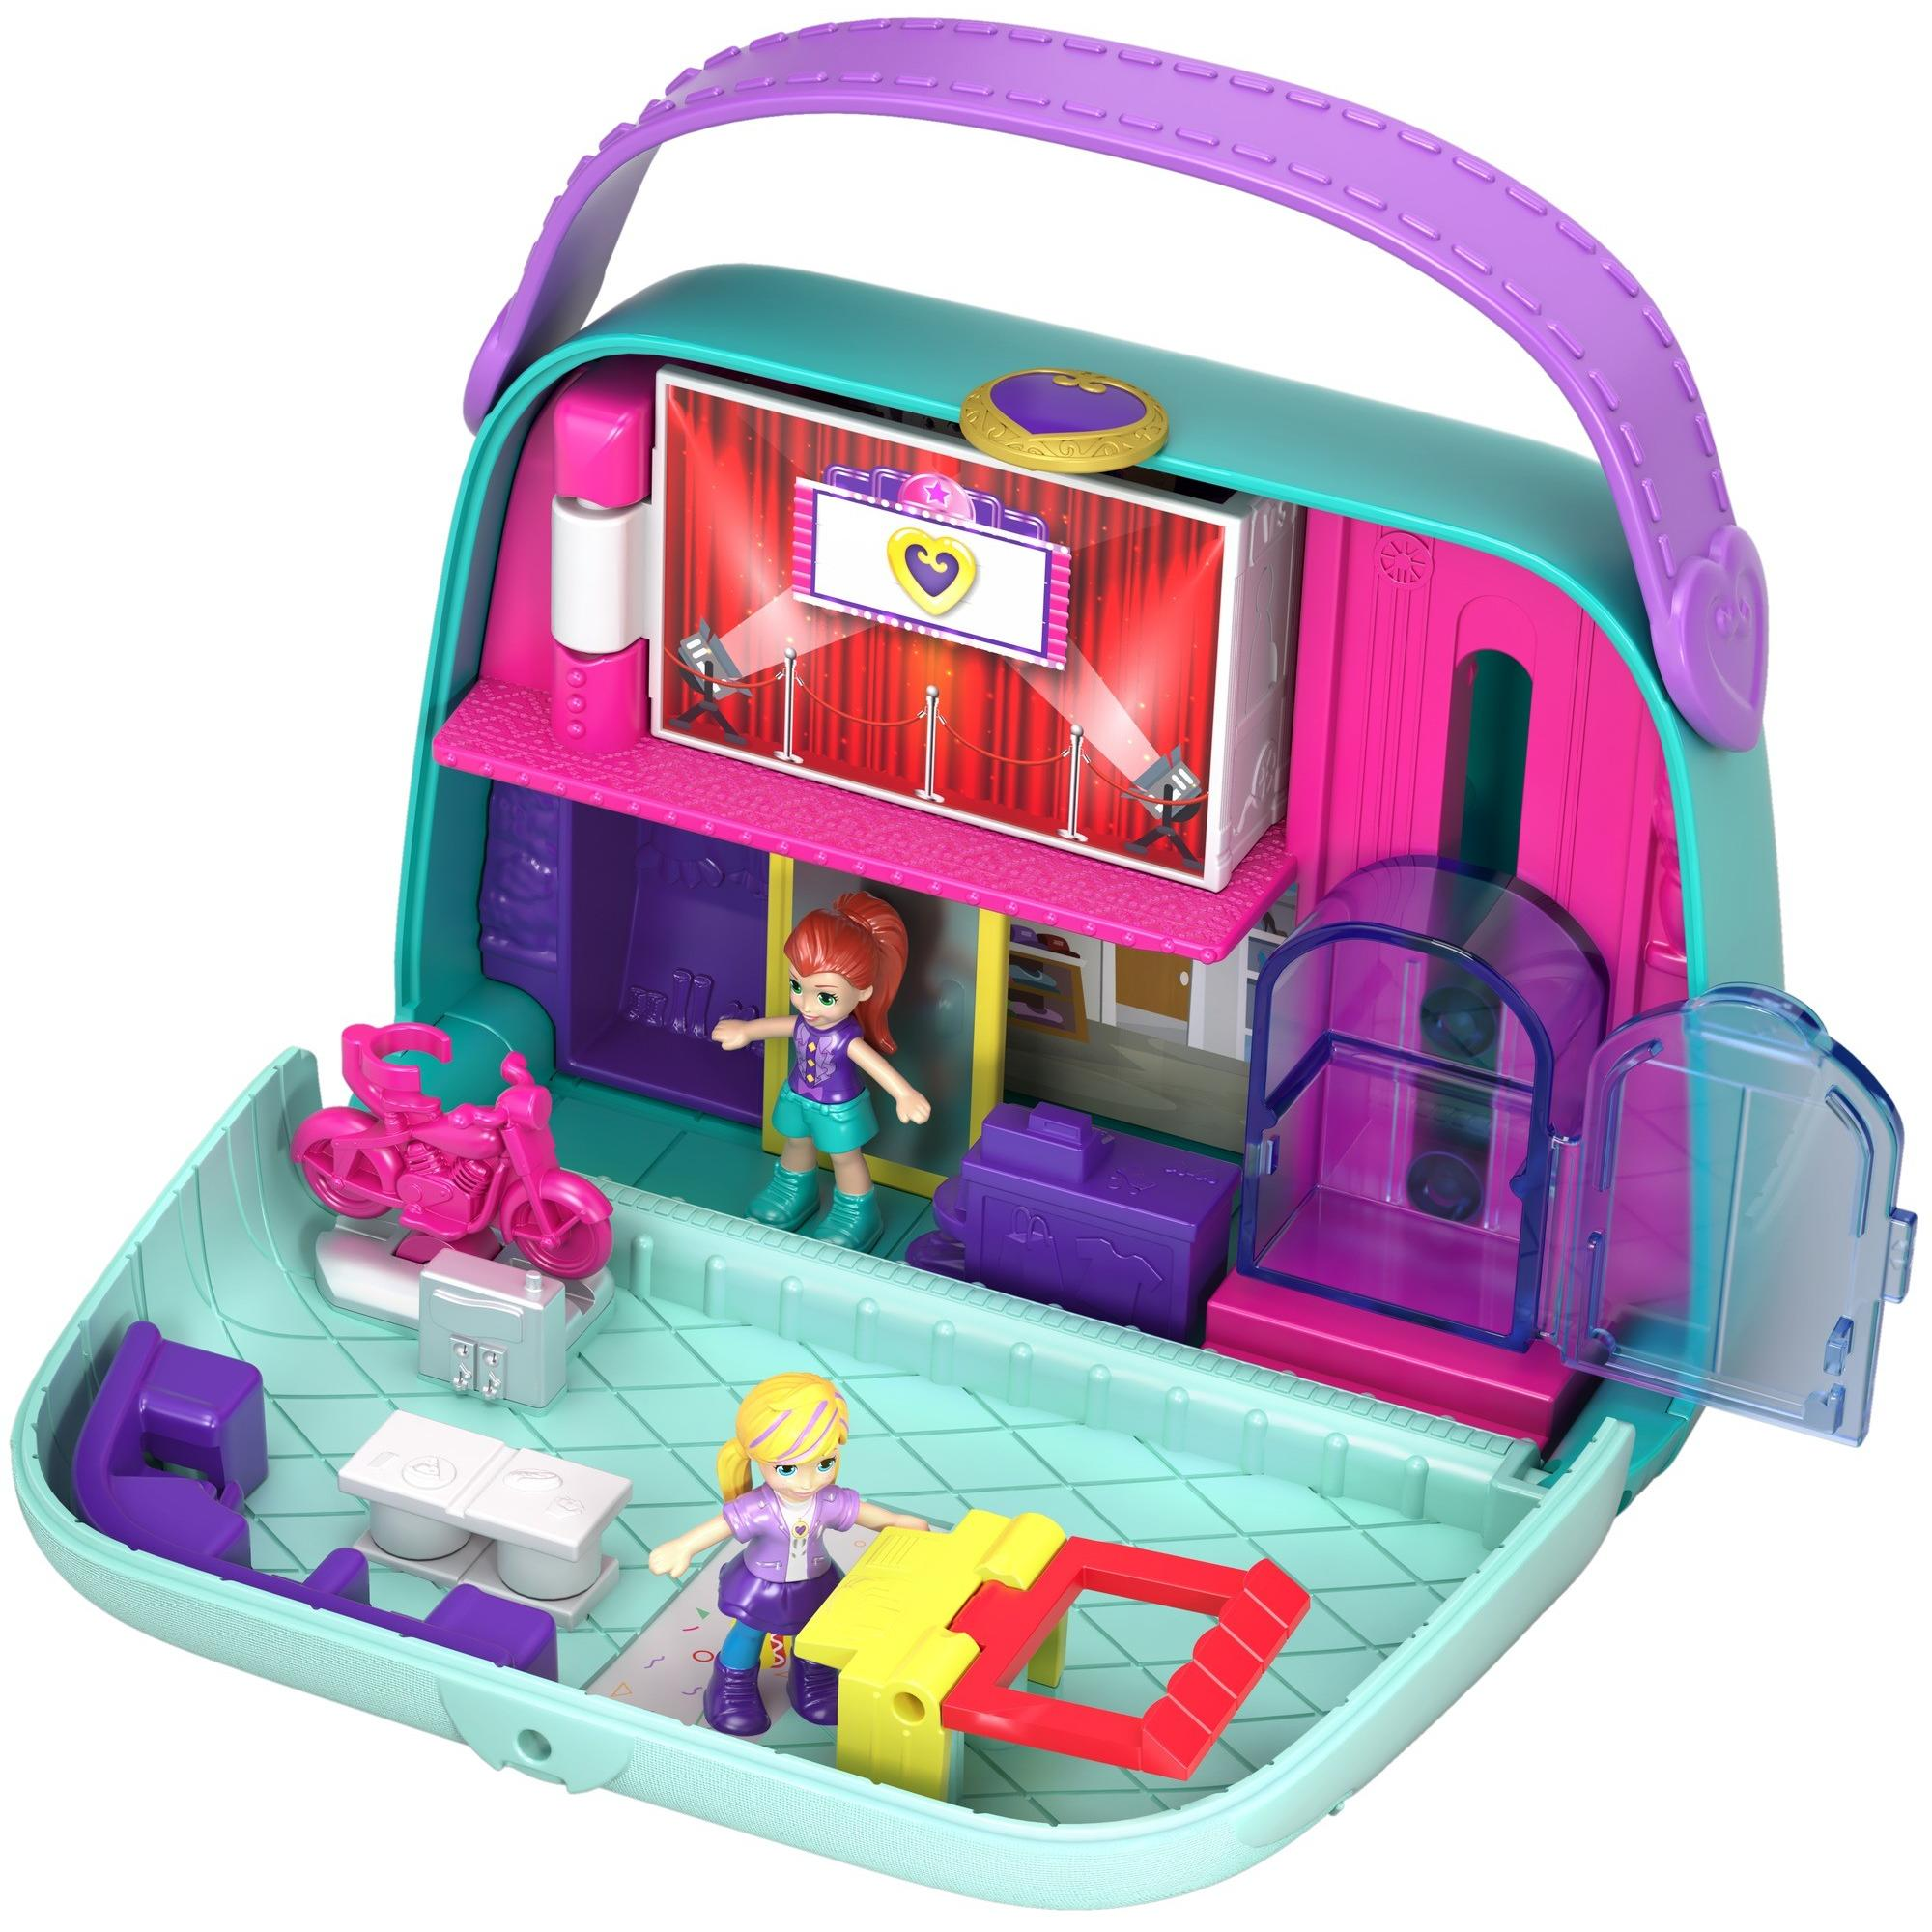 Polly Pocket Big Pocket World Mall Purse with Micro Polly & Lila Dolls